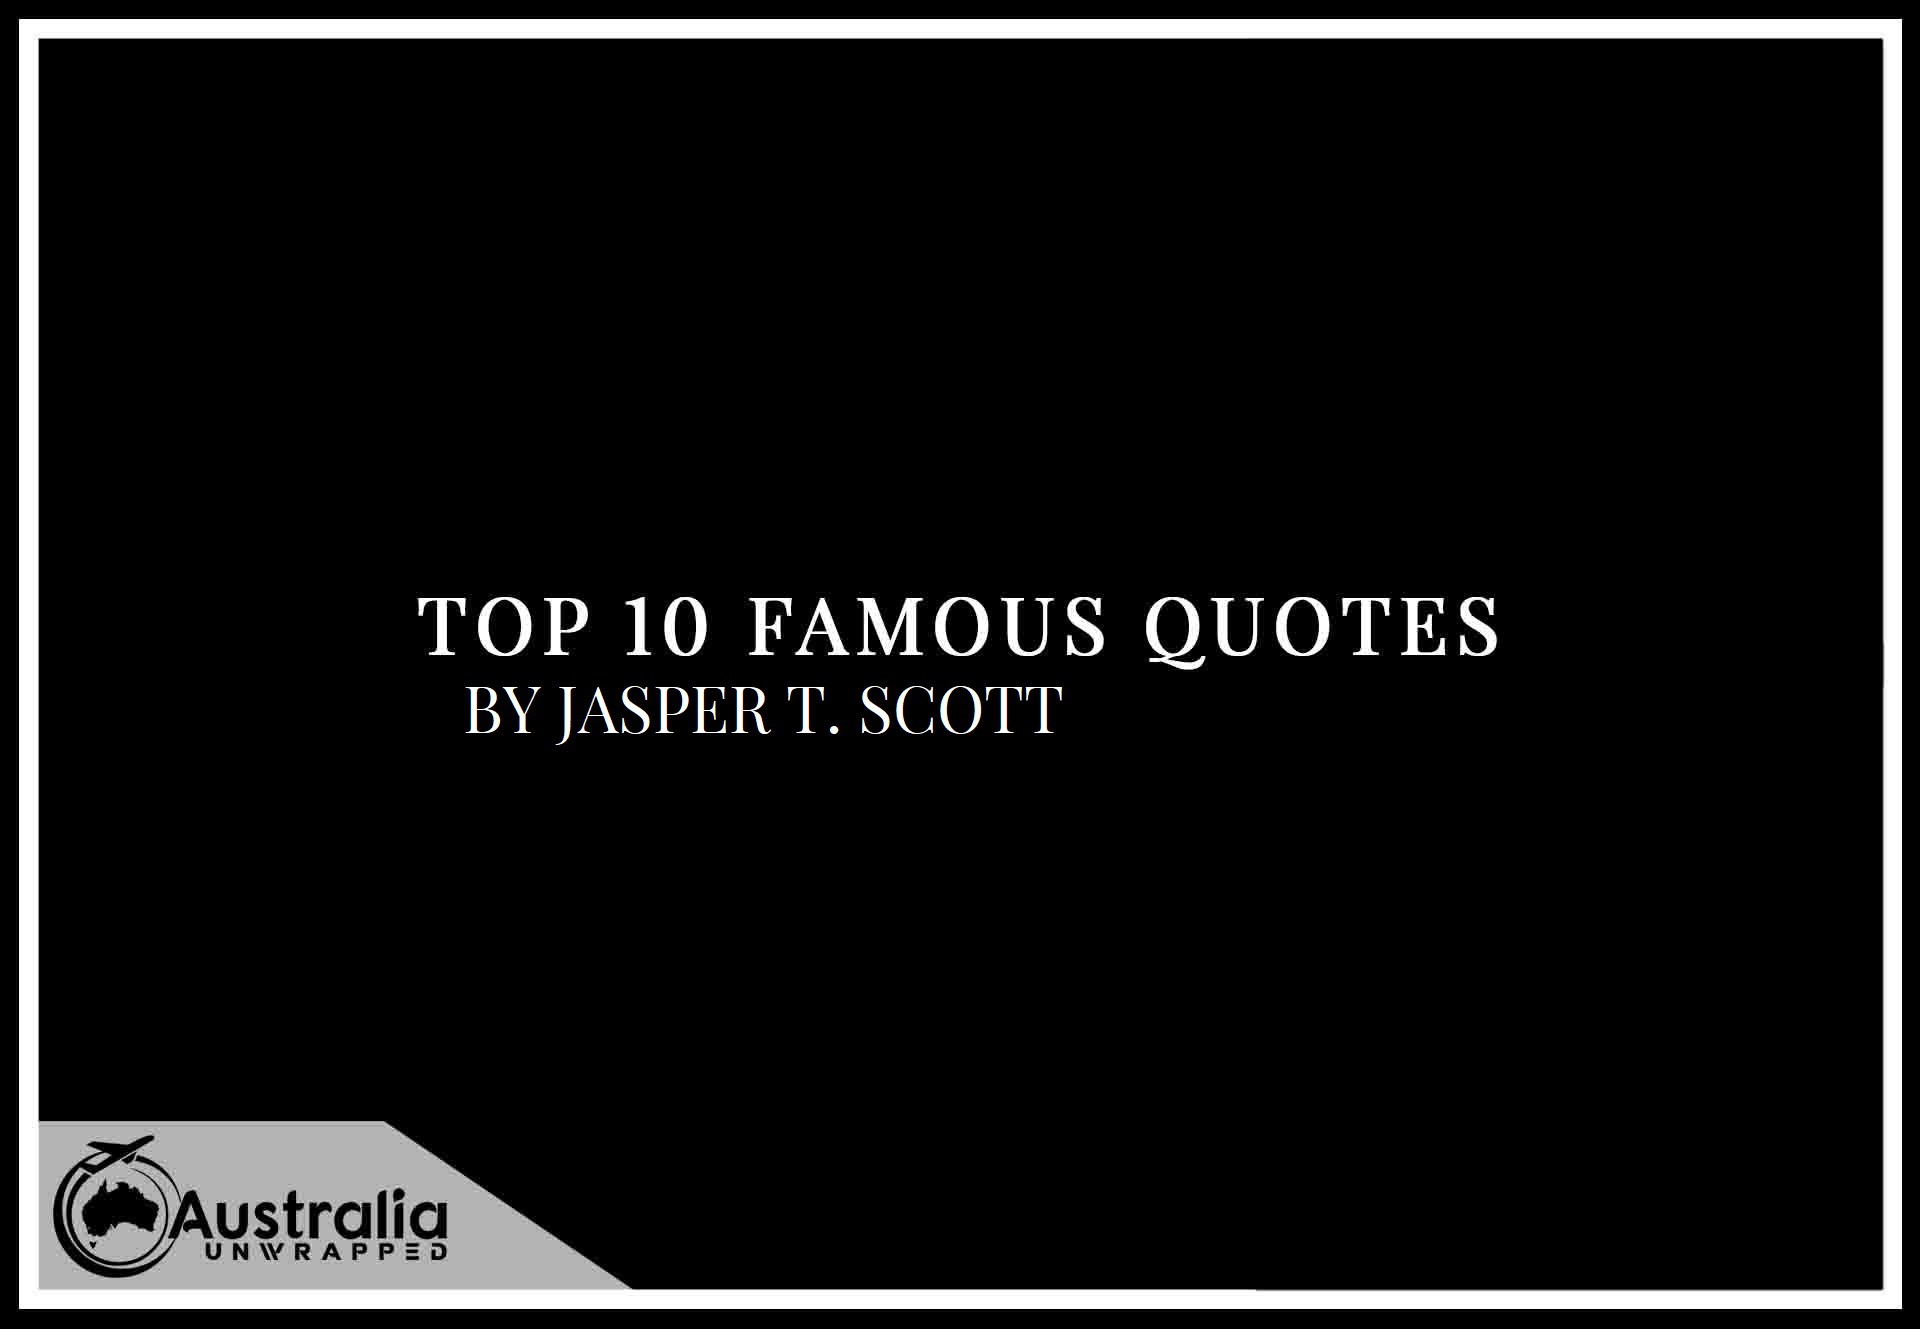 Top 10 Famous Quotes by Author Jasper T. Scott